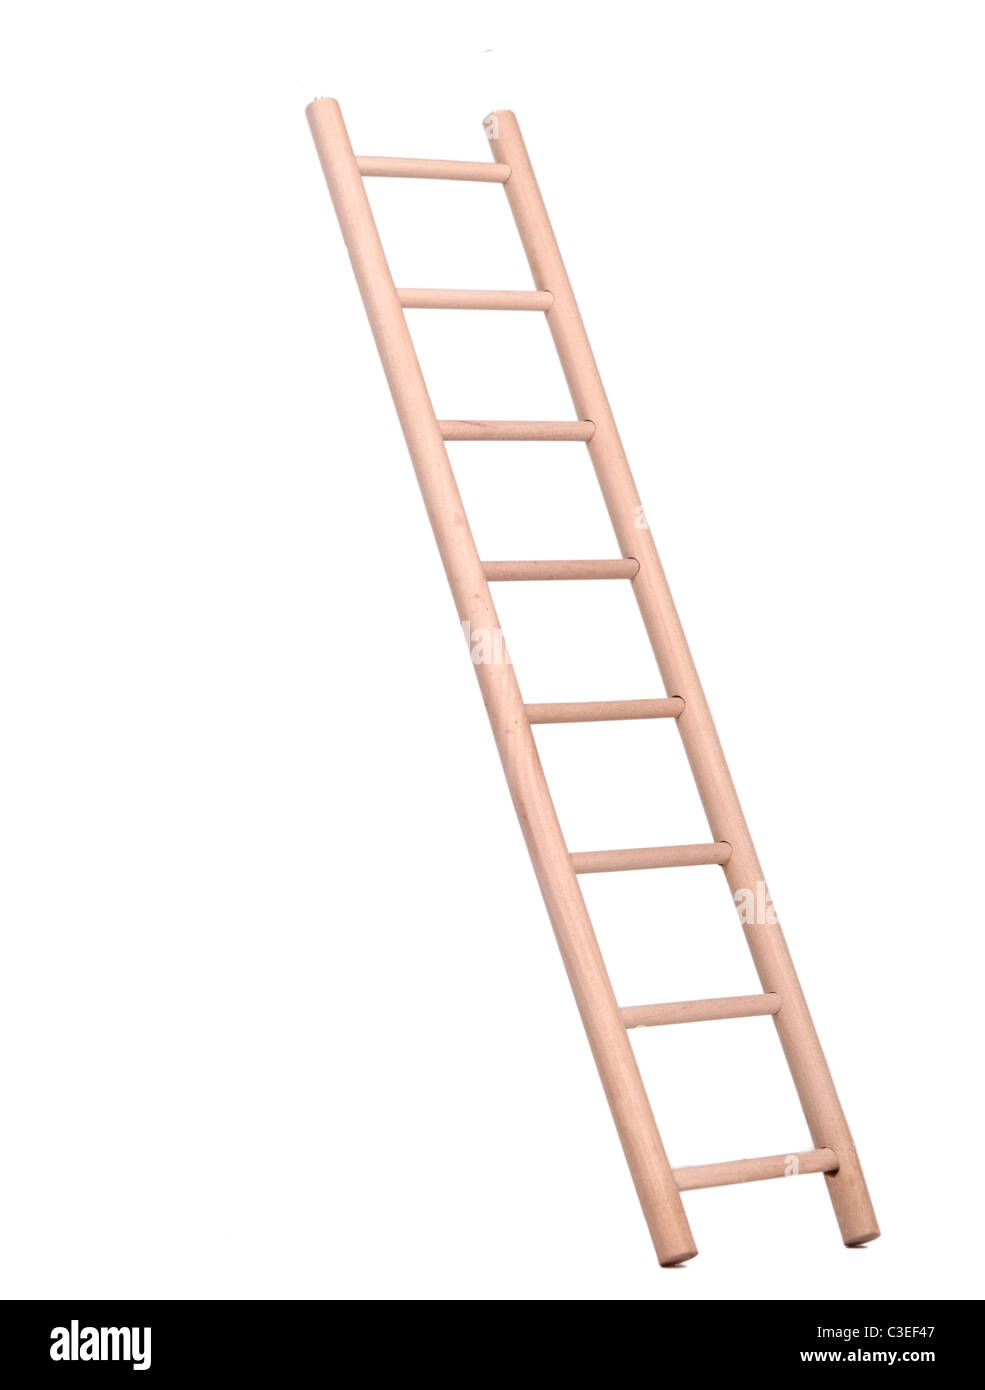 Sideview of a wooden ladder isolated on white background - Stock Image